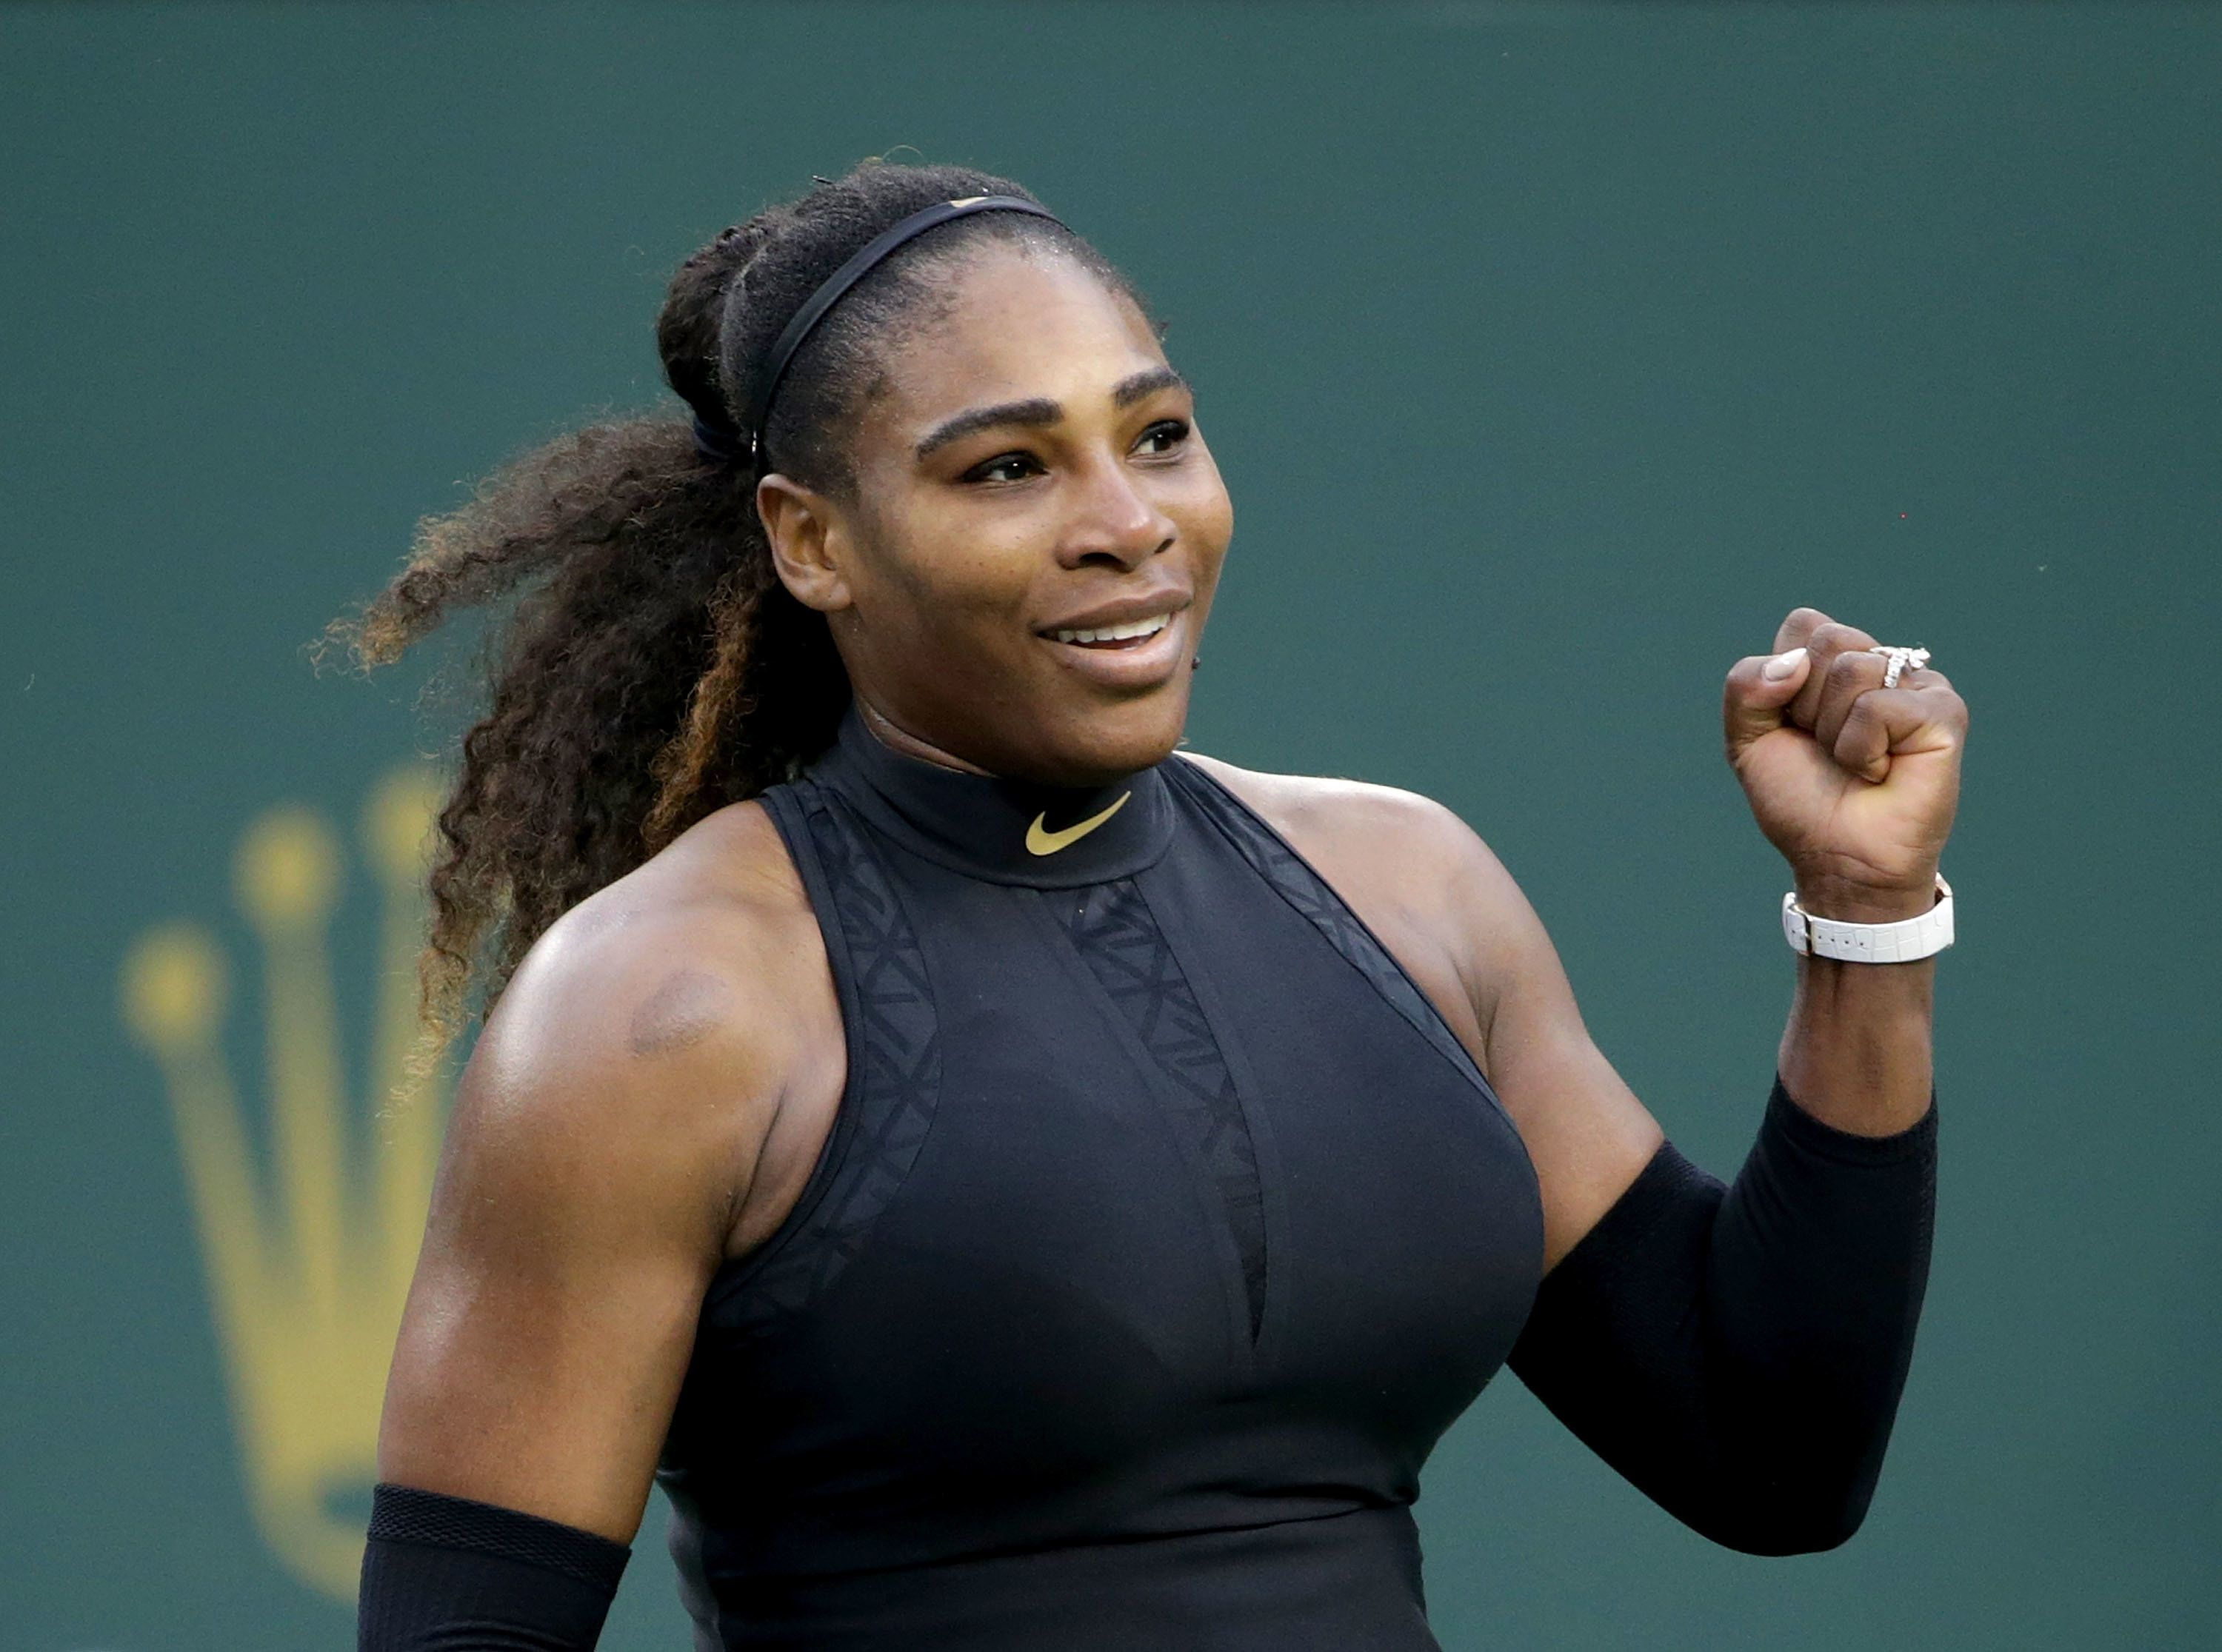 Serena Williams Gets Real About Managing